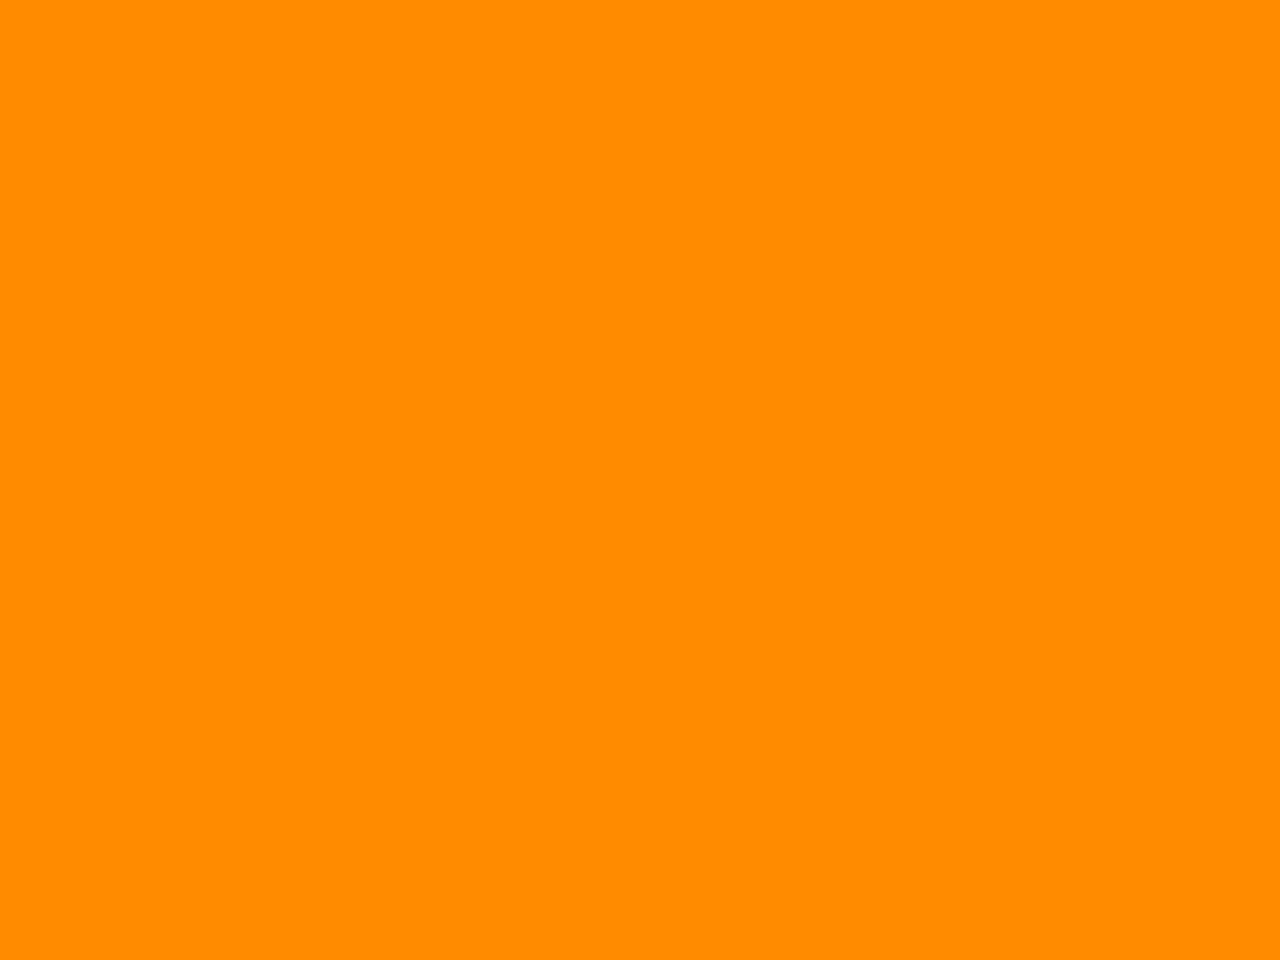 Orange solid color background view and download the below background 1280x960